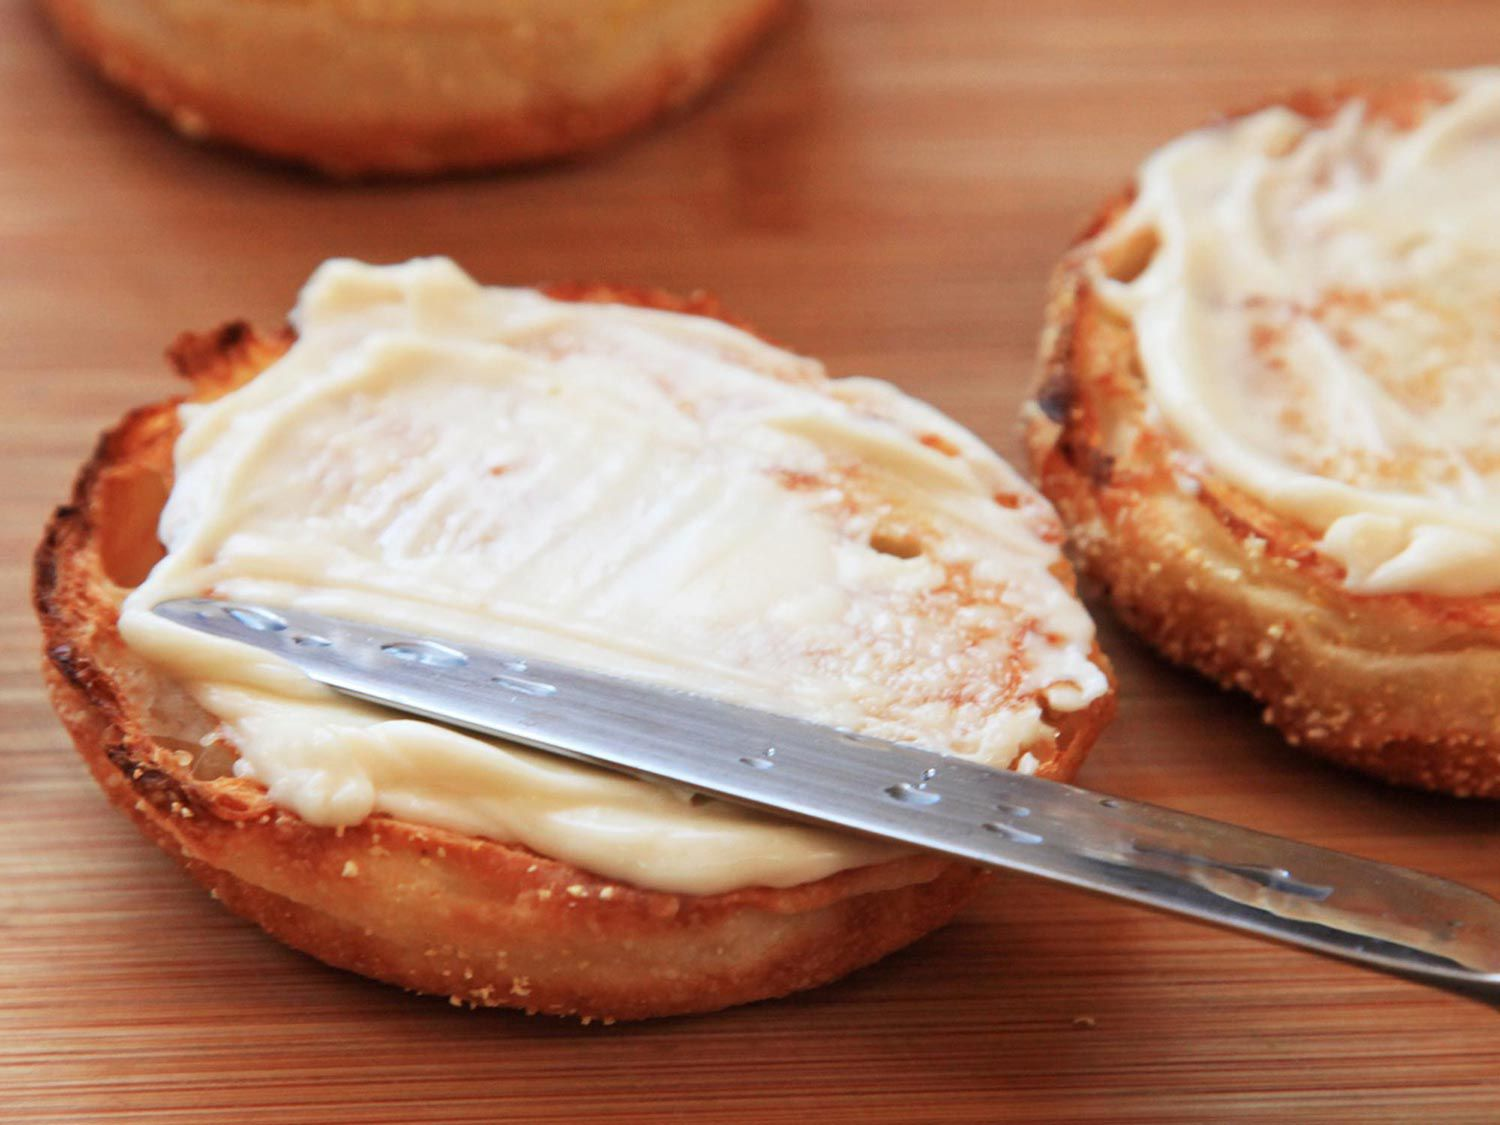 A butter knife spreading mayo on a toasted English muffin